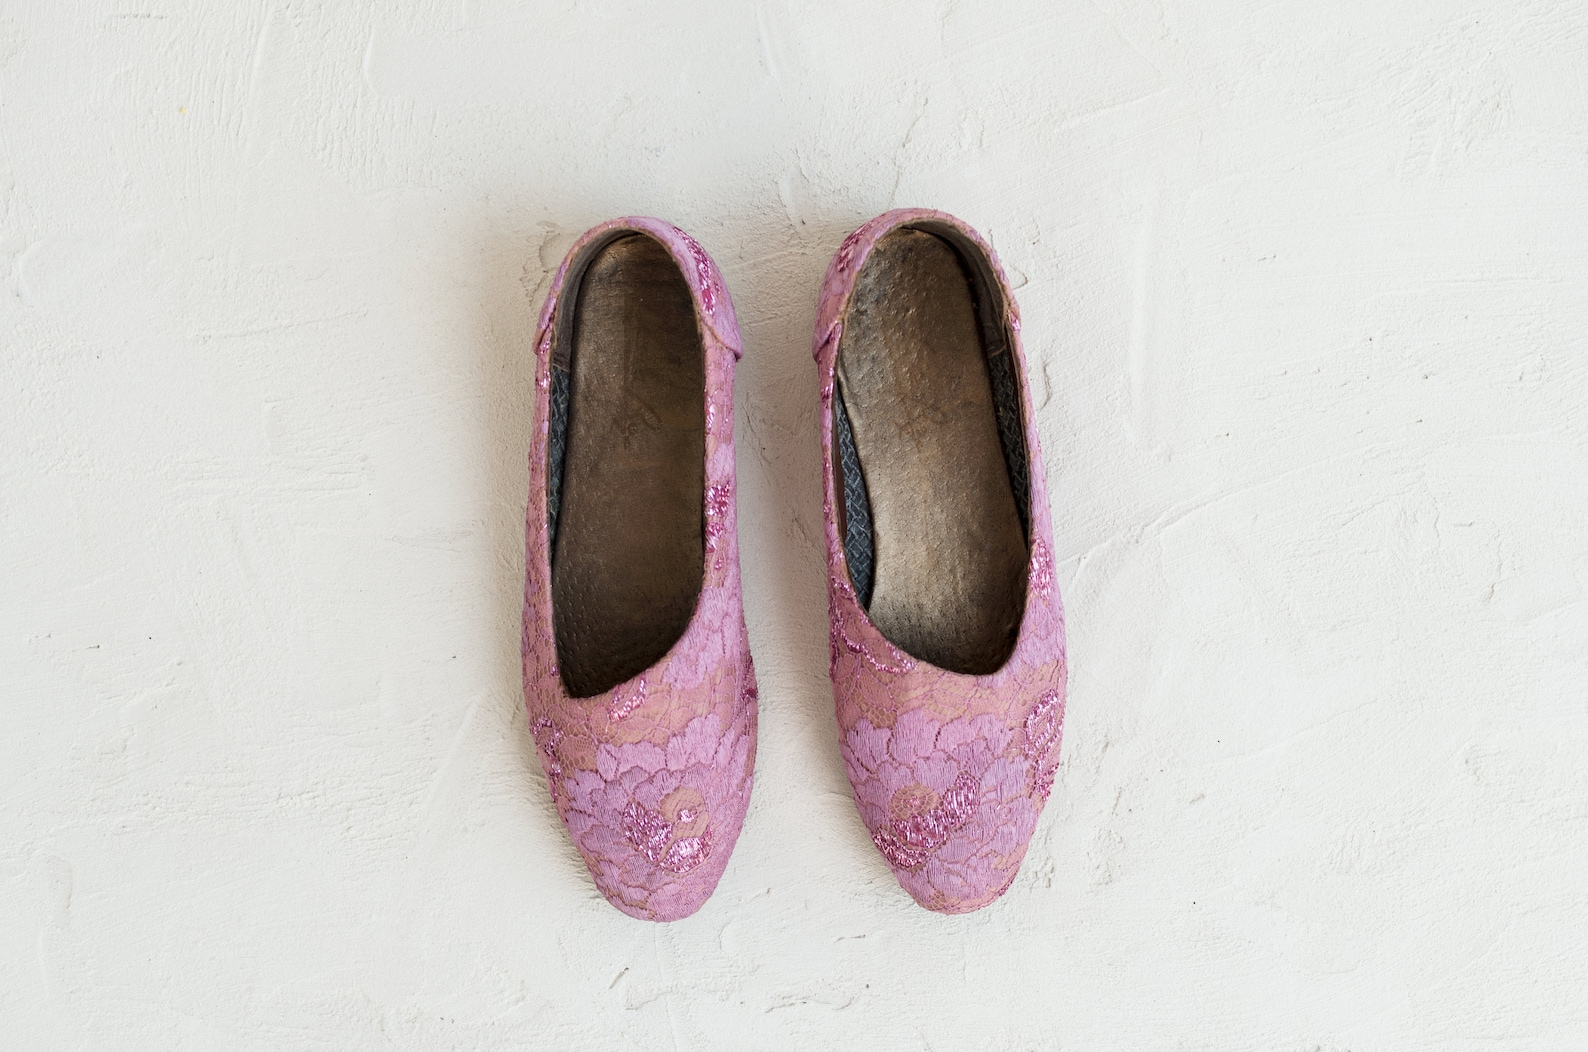 pink and purple lace shoes - vintage 1990s ballet flats - rachel slip ons 35% off